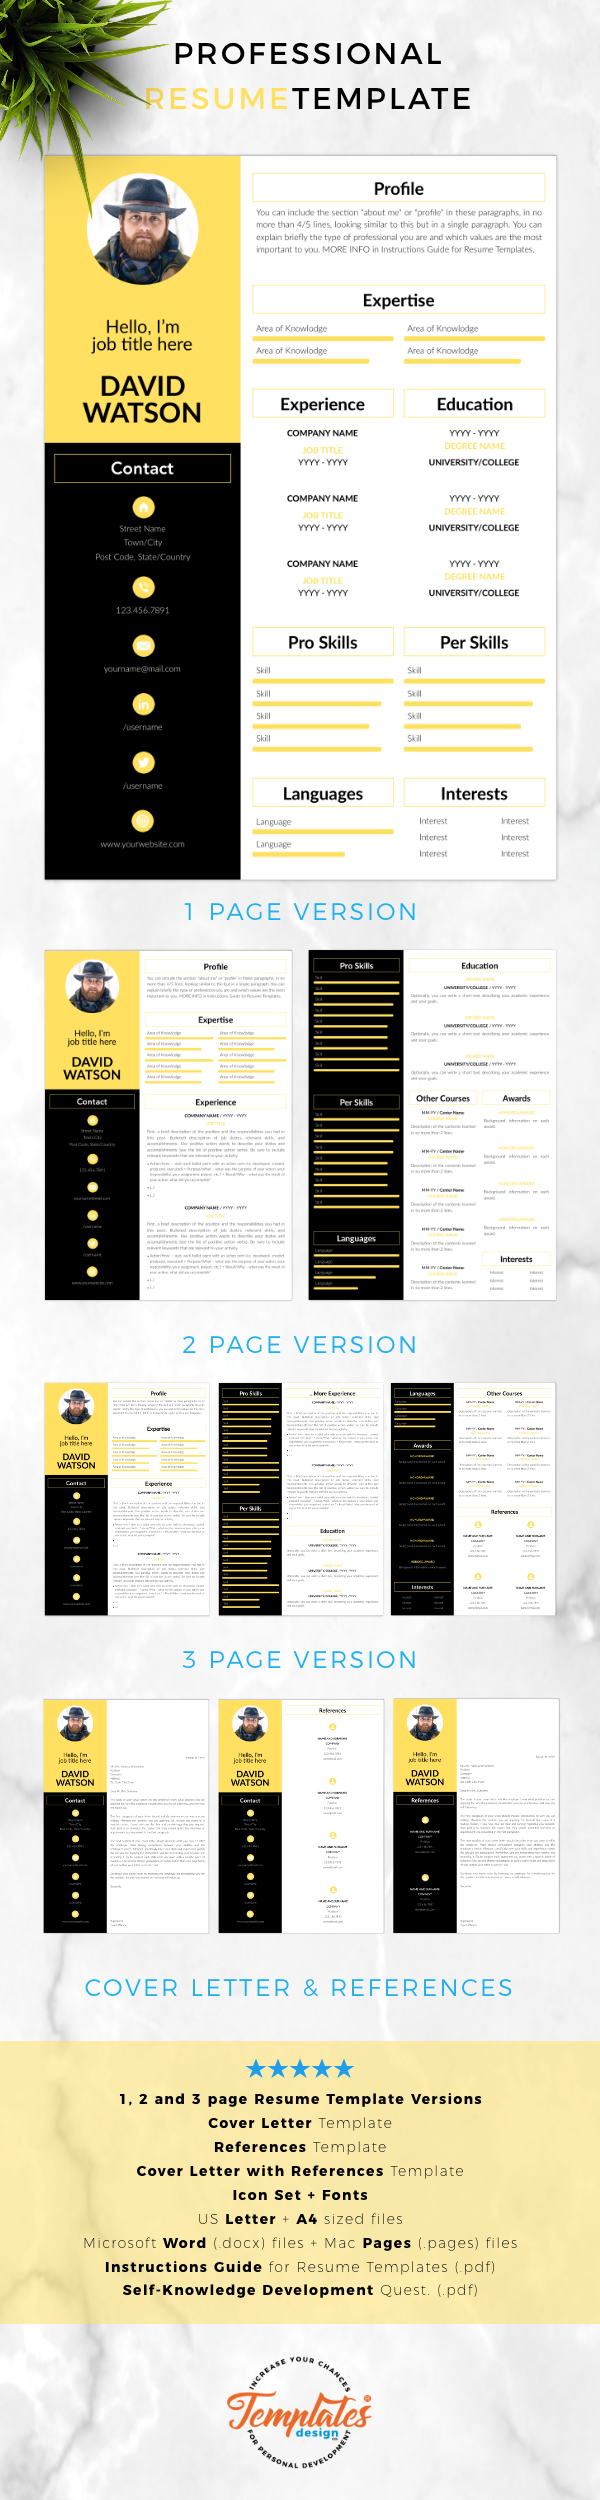 cv template    professional resume template with photo